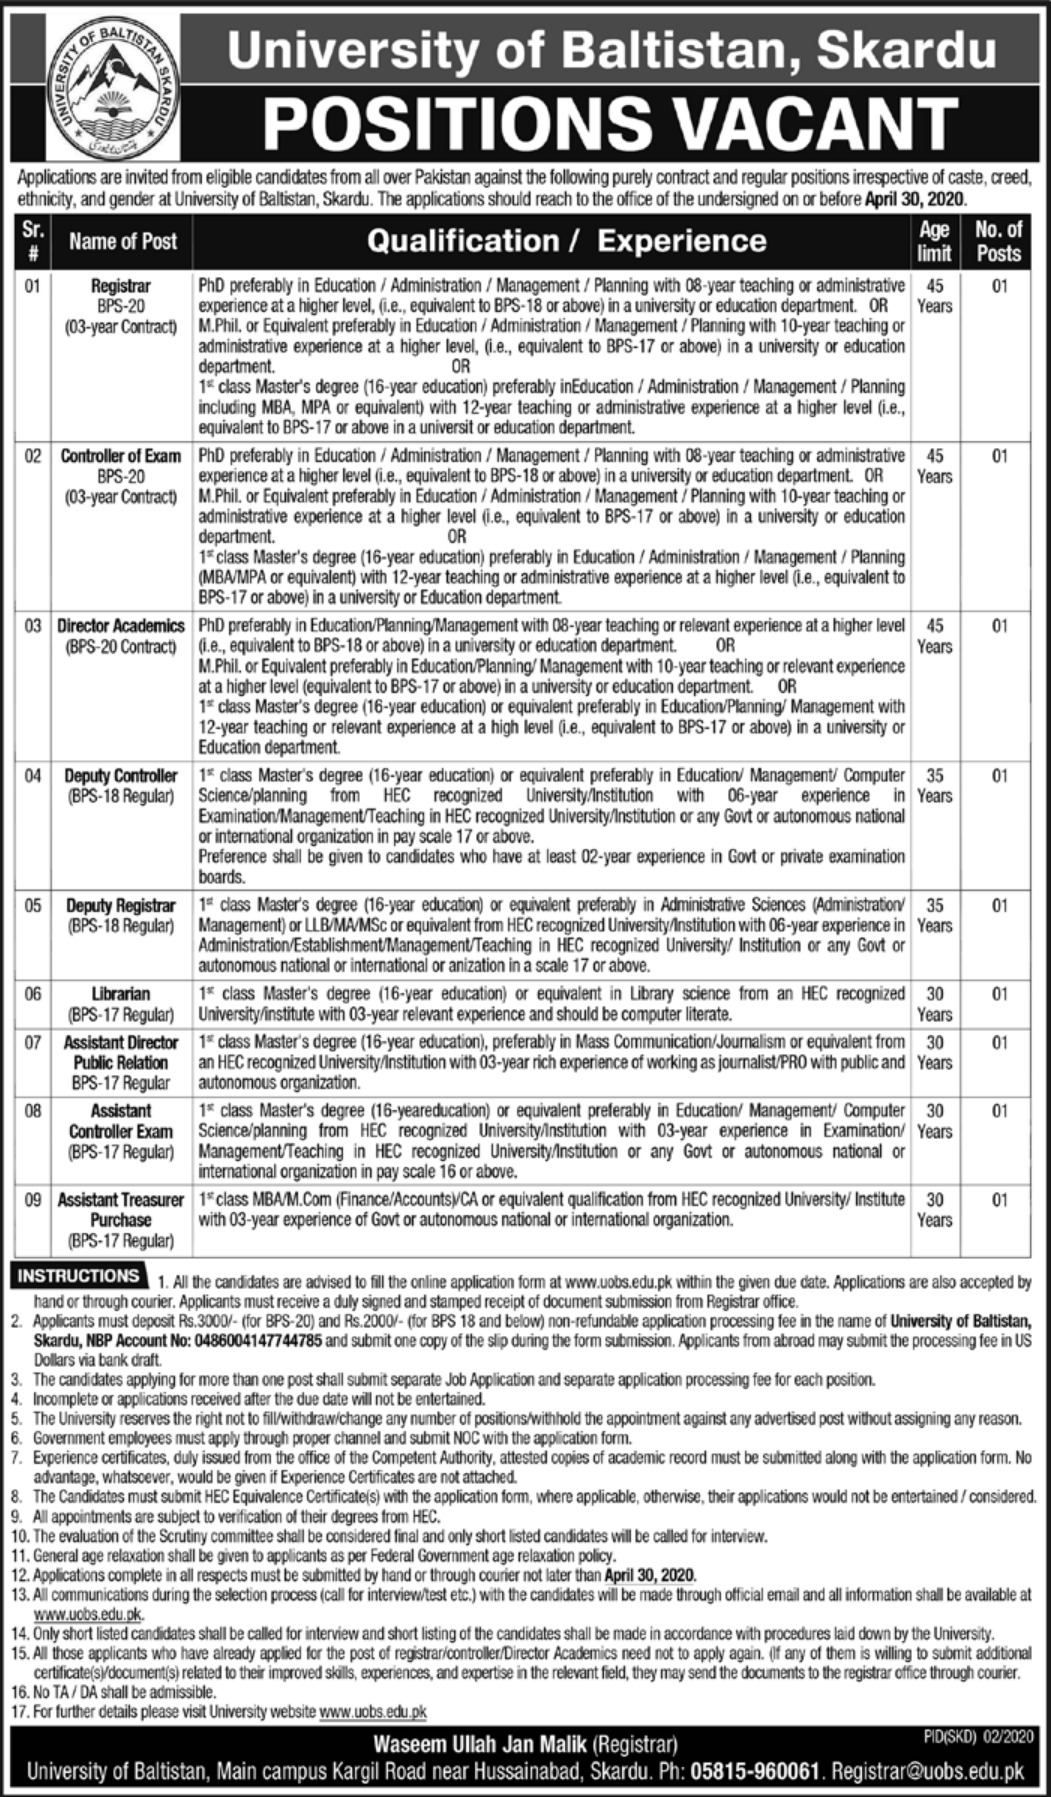 University of Baltistan Skardu Jobs 2020